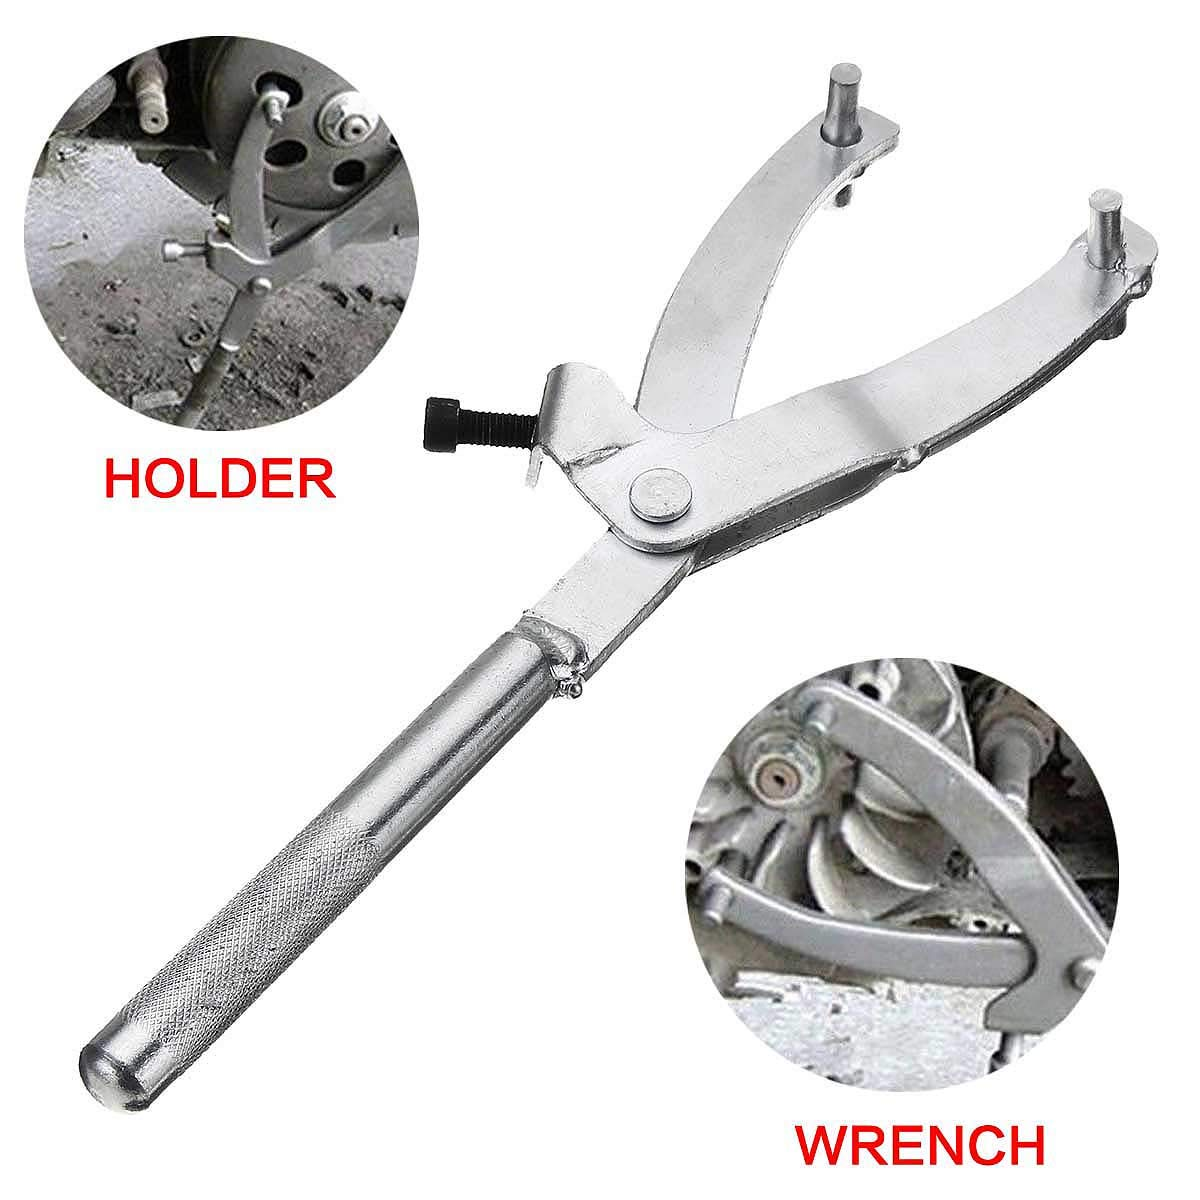 For Motorcycle Accessries Atv Scooter Spanner Wrench Variator Flywheel Clutch Holder Remover Puller Tool 28Cm